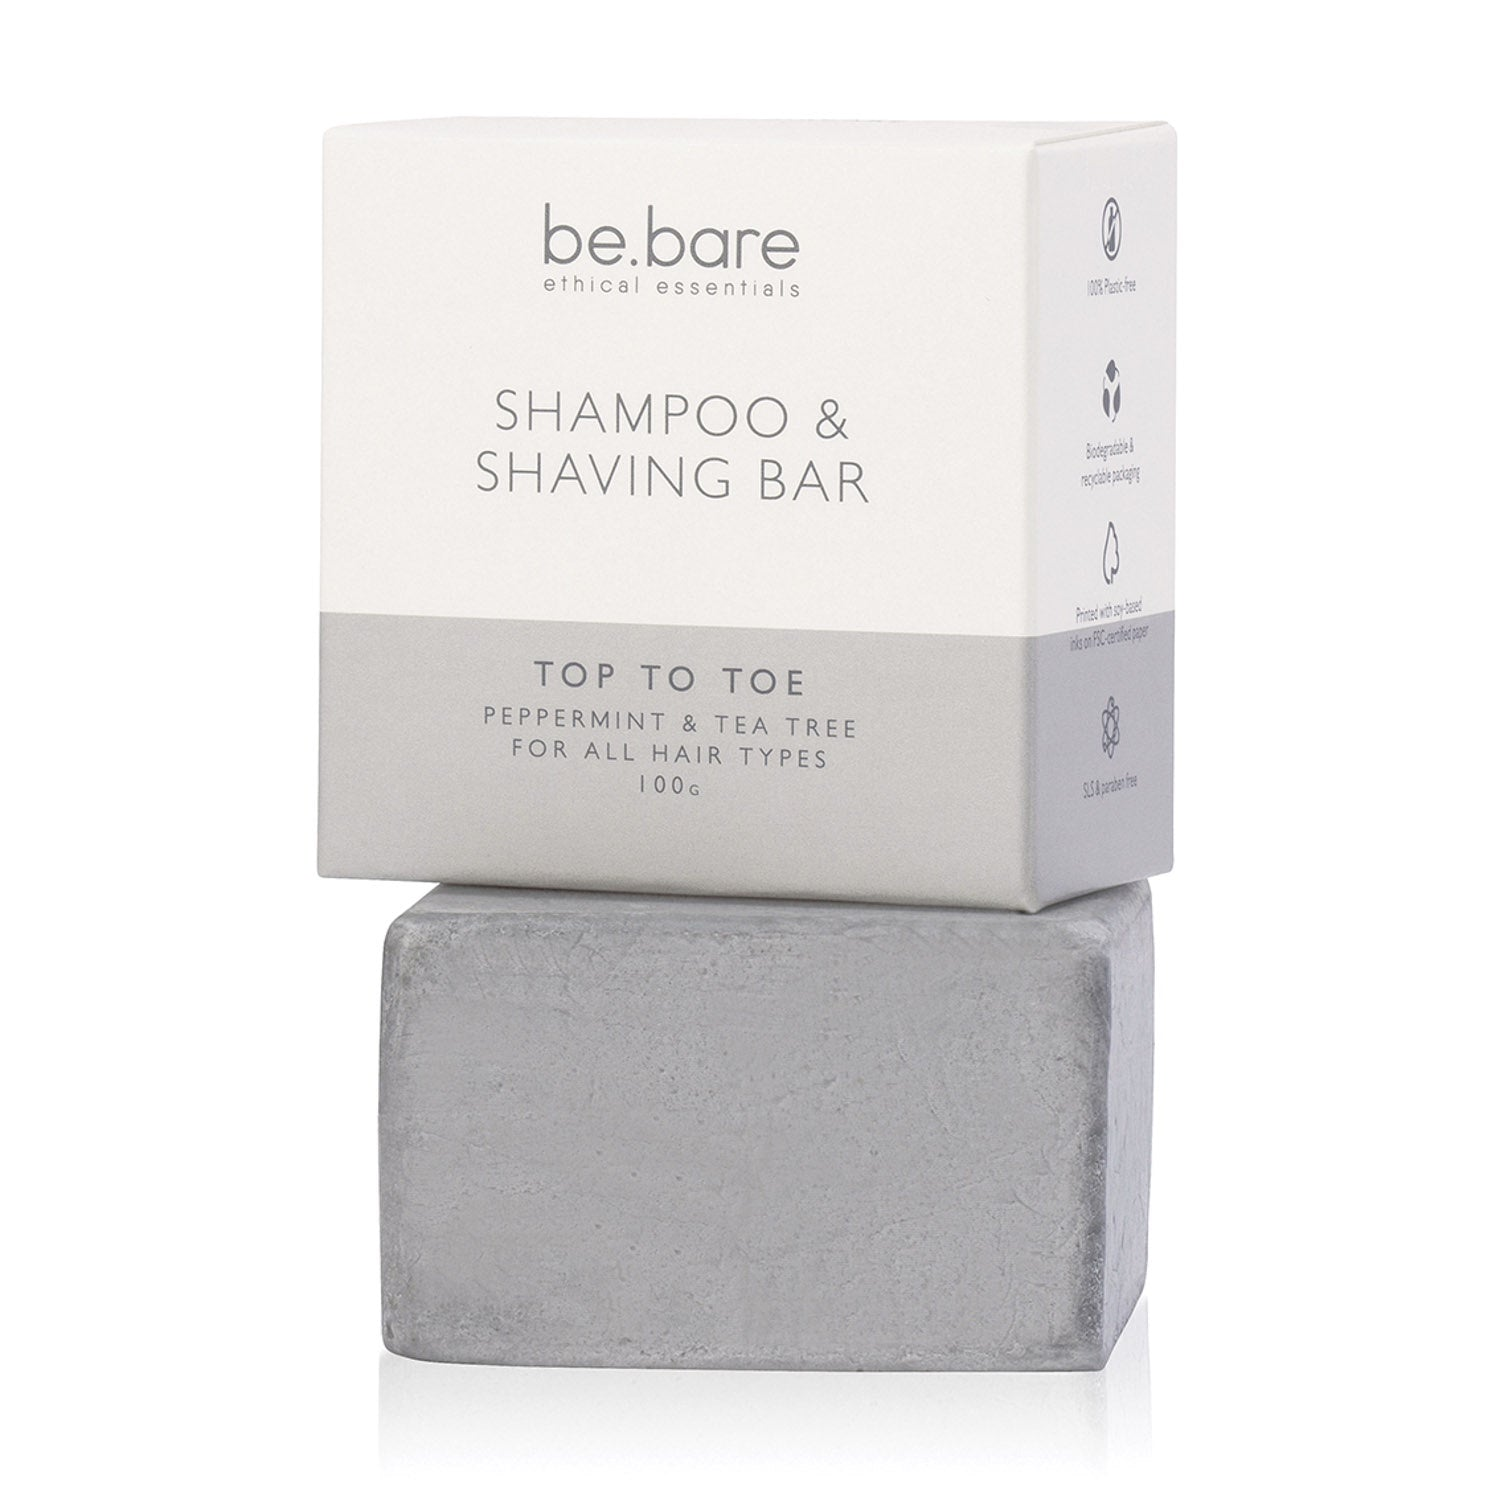 Be Bare Top to Toe Shampoo & Shaving Bar